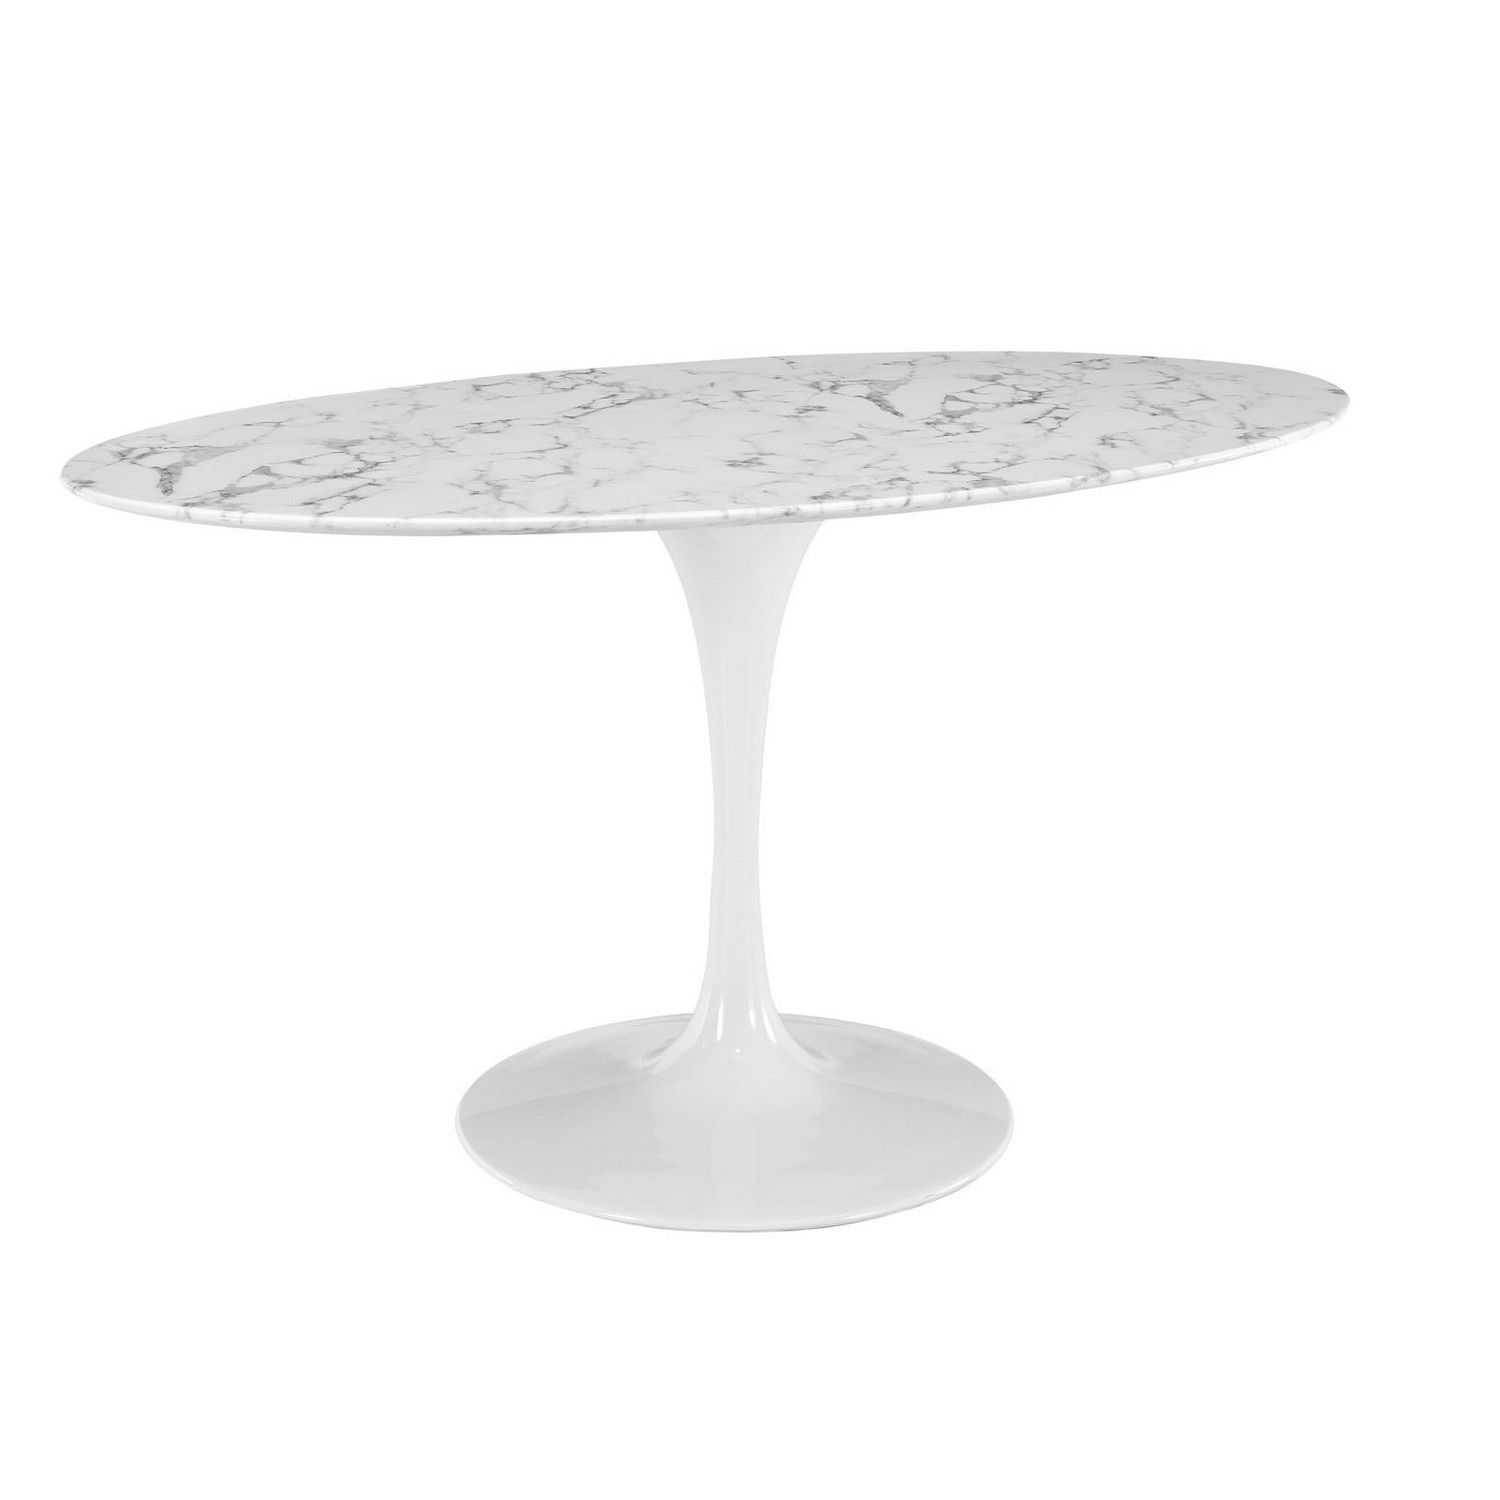 Modway Lippa 60 Oval-Shaped Artificial Marble Dining Table - White